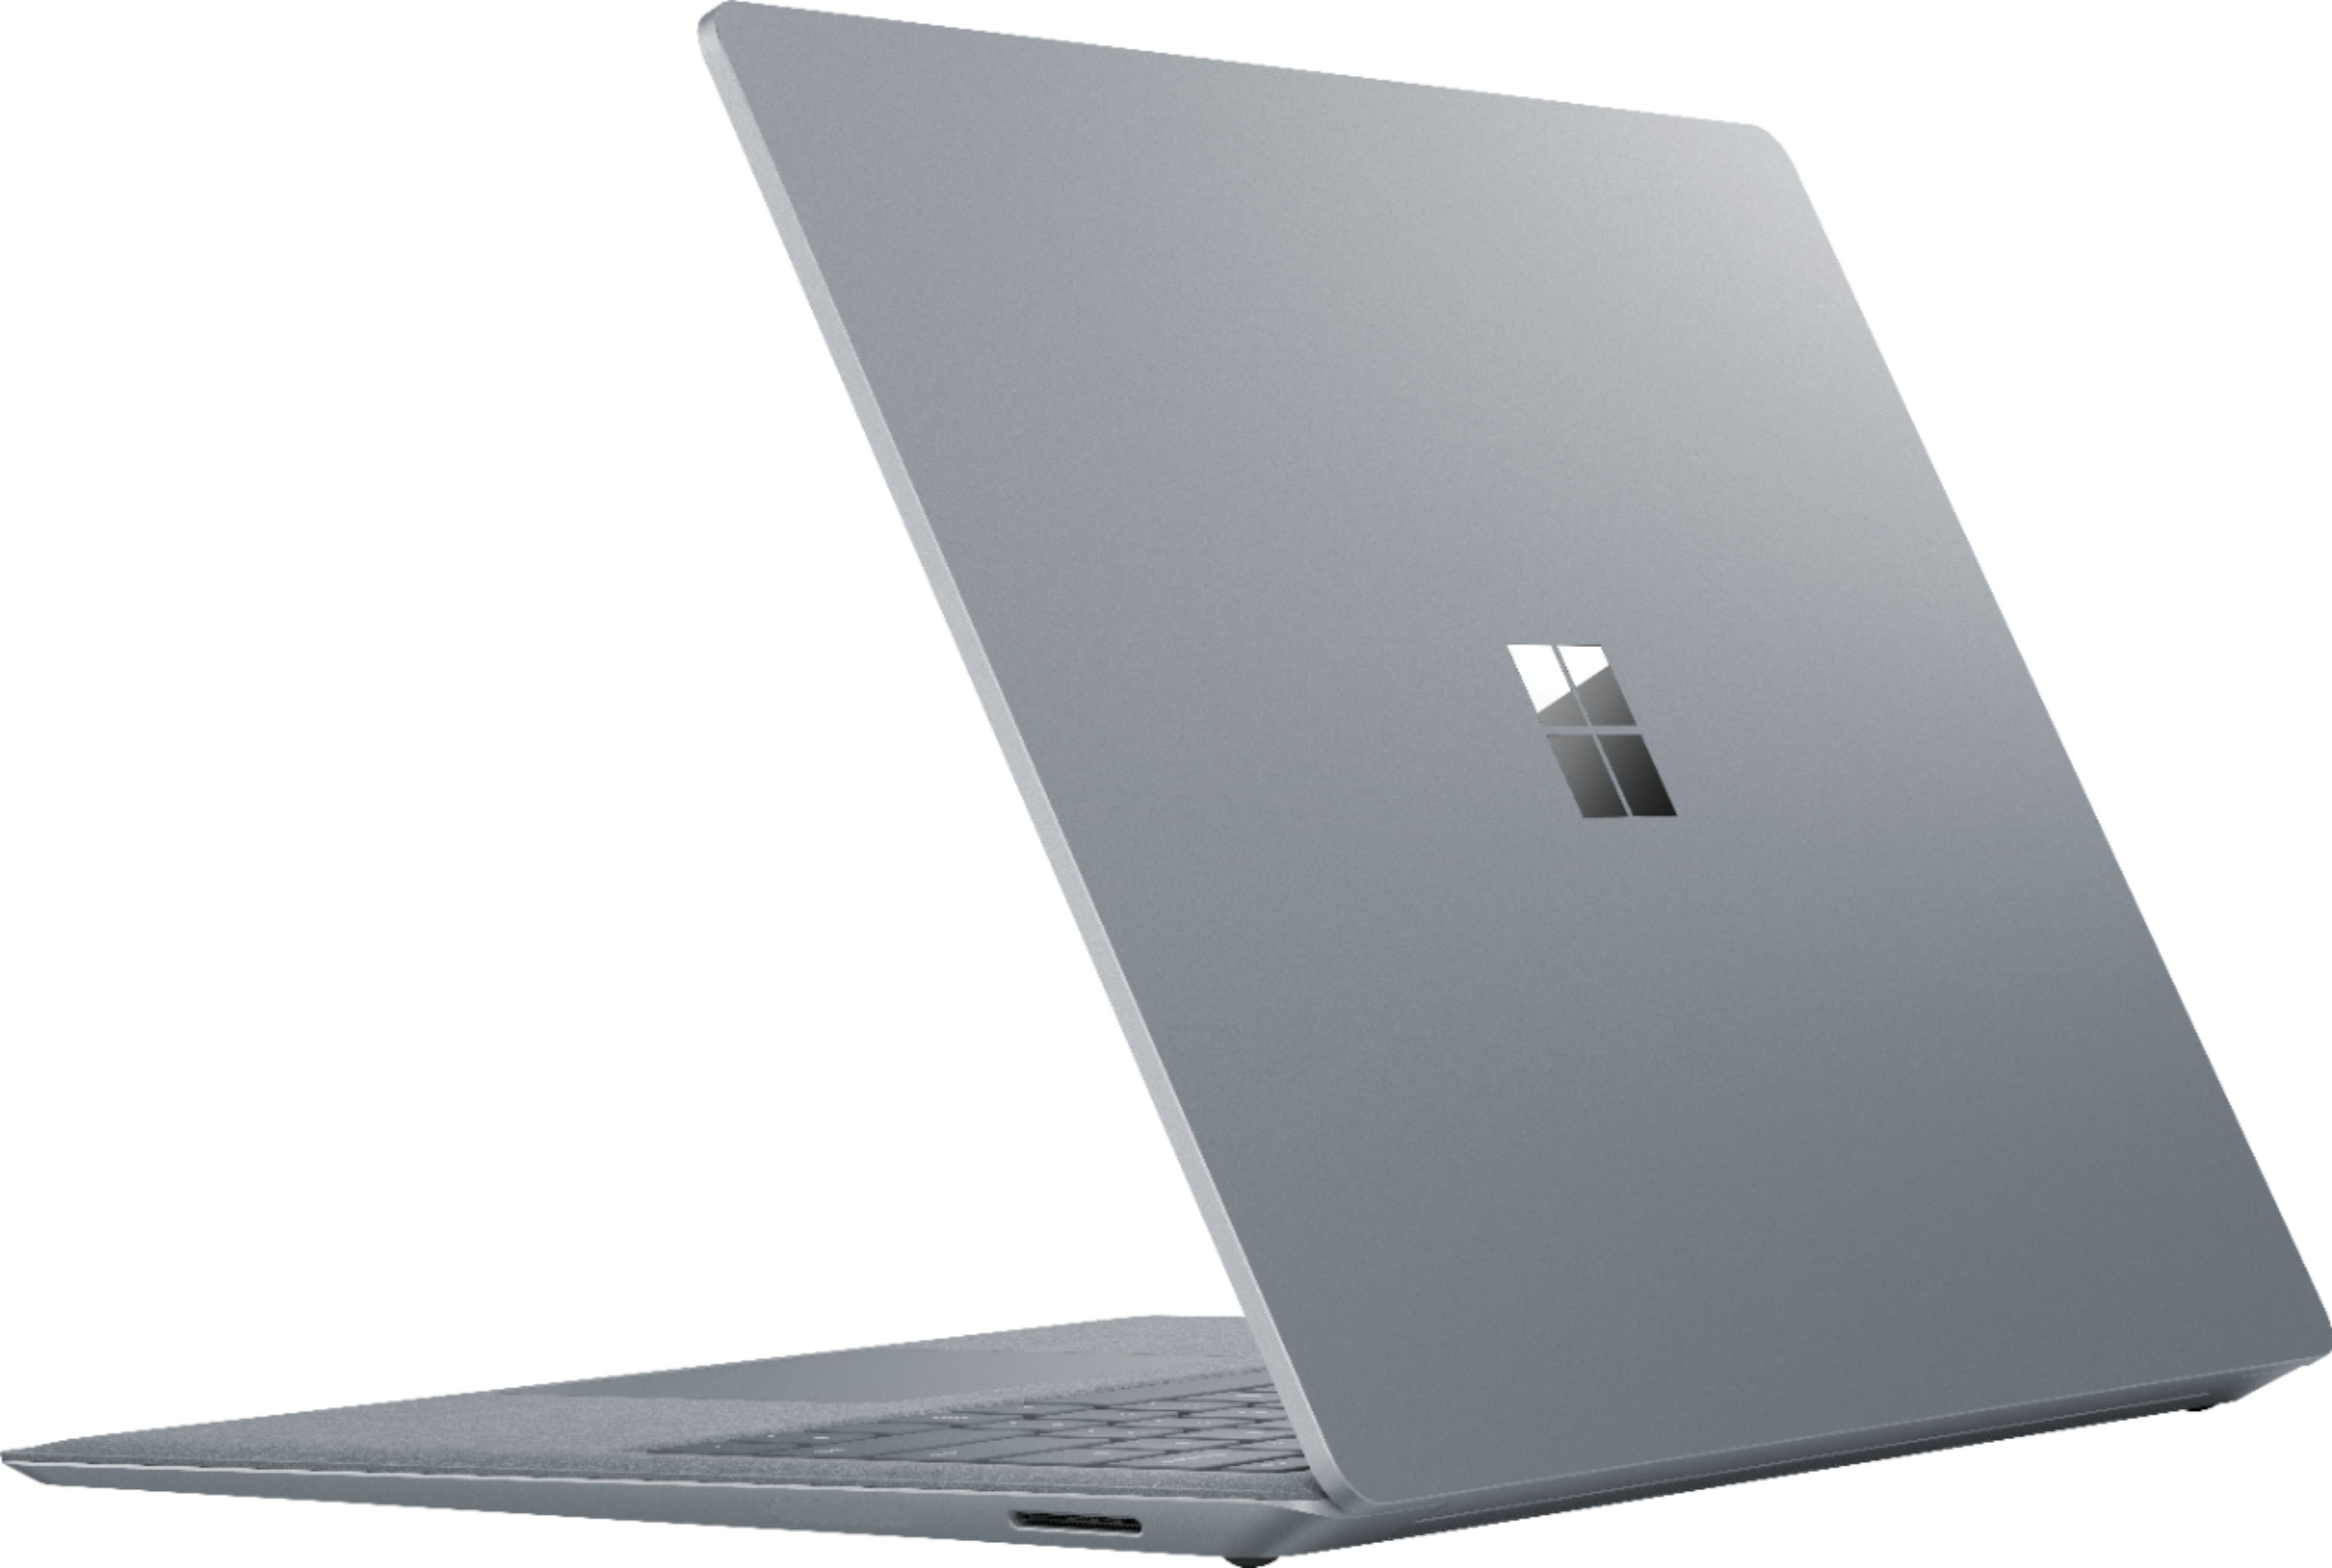 """Alt View Zoom 12. Microsoft - Geek Squad Certified Refurbished Surface Laptop 2 - 13.5"""" Touch Screen - Intel Core i5 - 8GB - 256GB SSD - Platinum."""